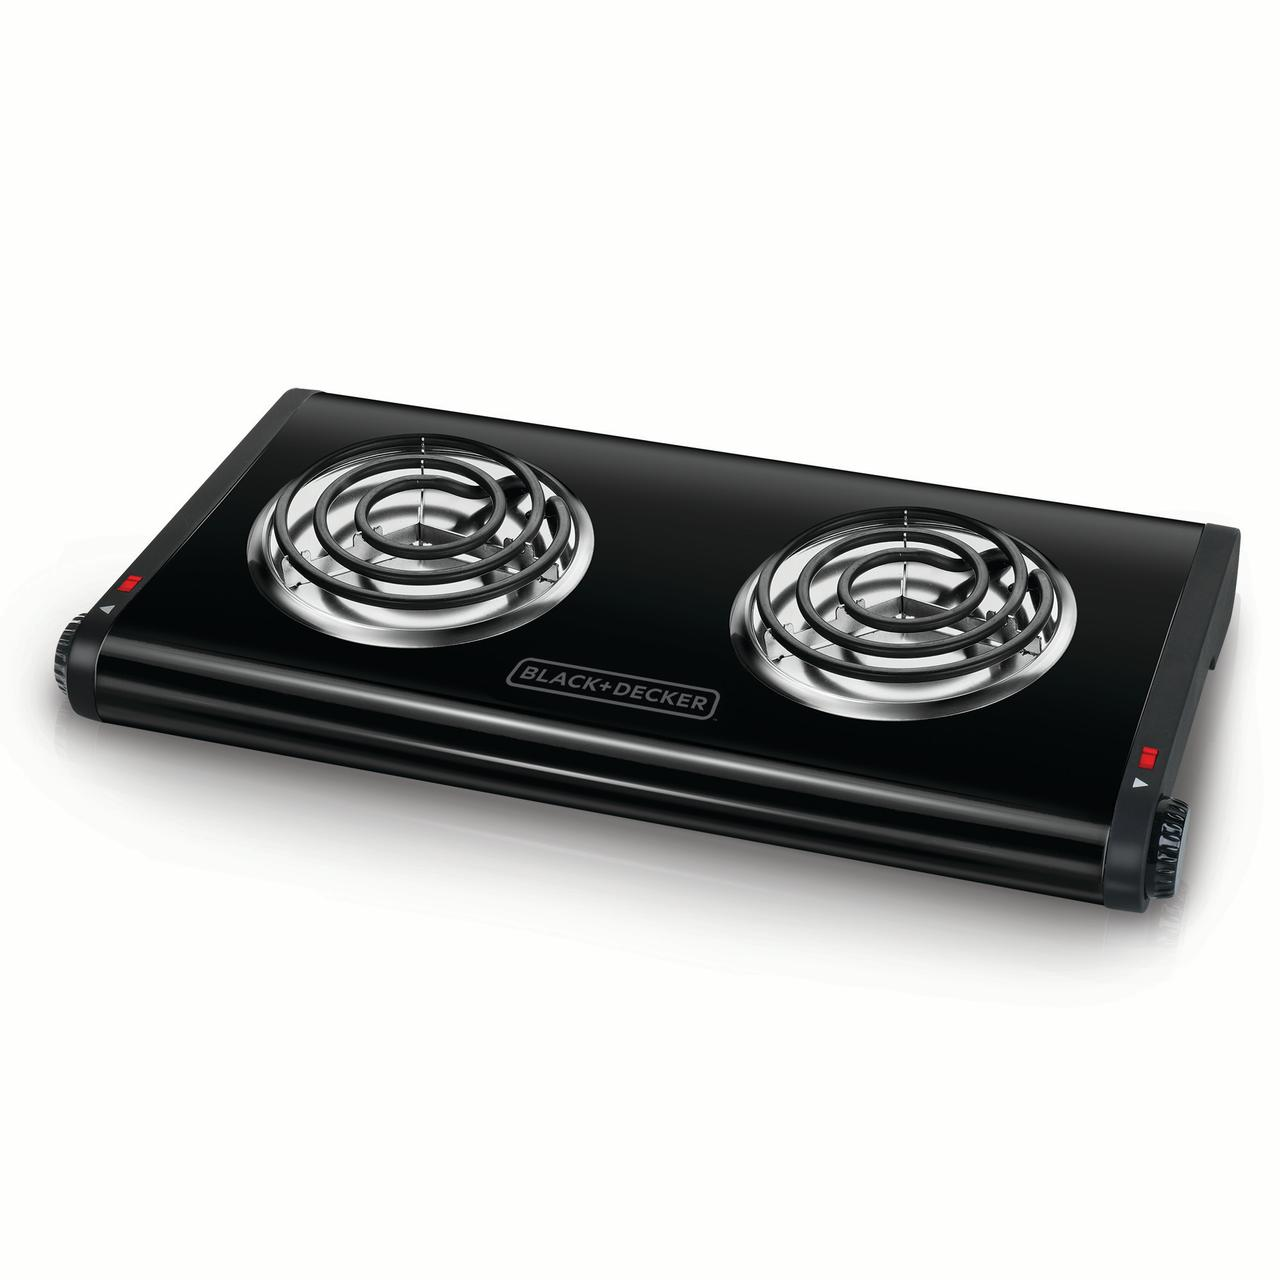 Merveilleux BLACK+DECKER Double Burner Portable Buffet Range, Black, DB1002B